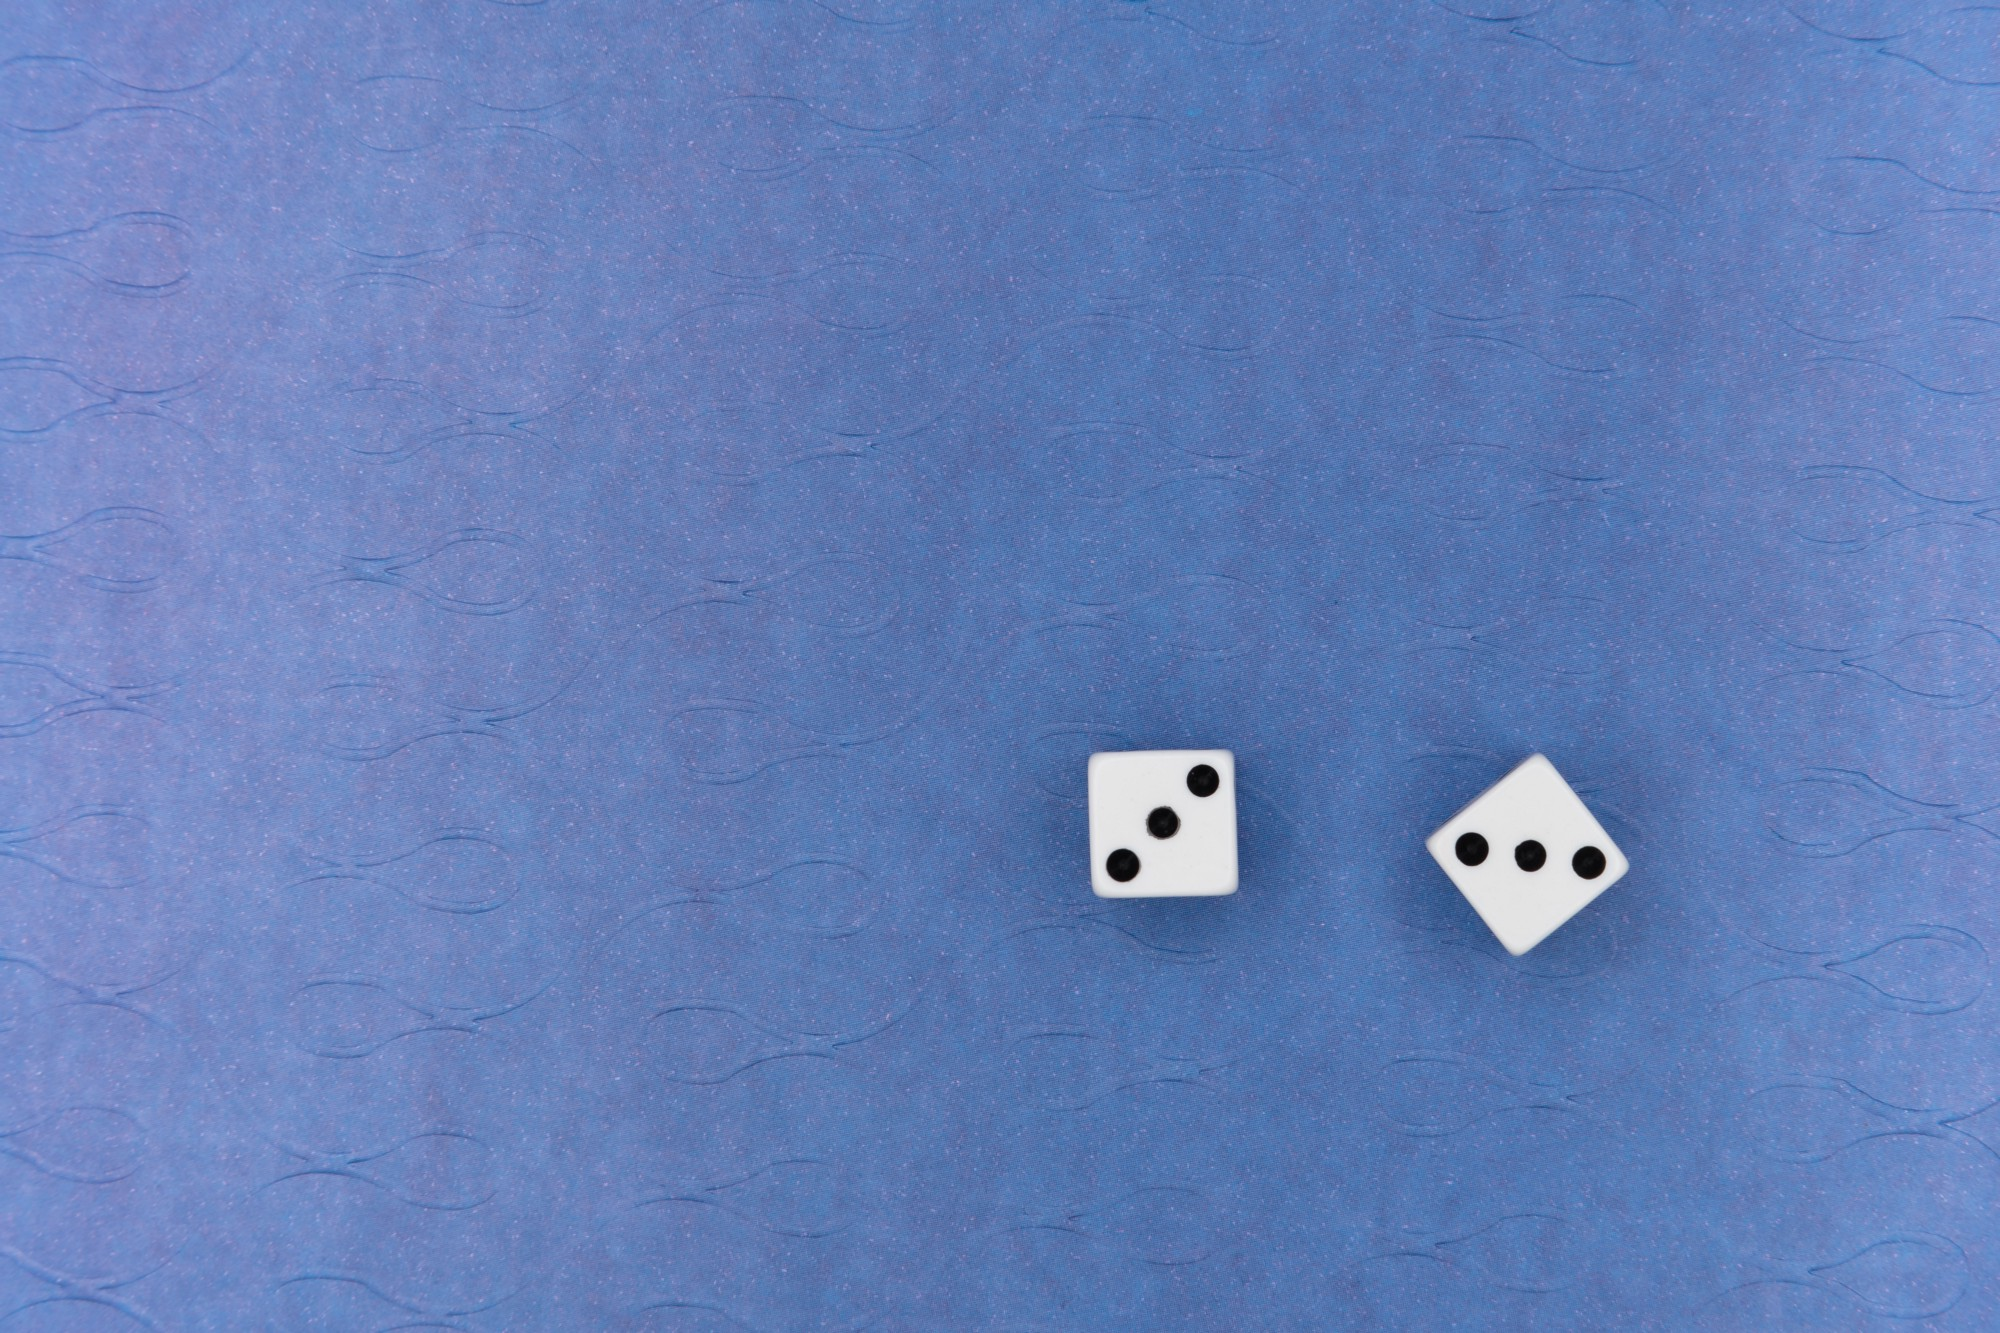 Dice rolled—a gamble.